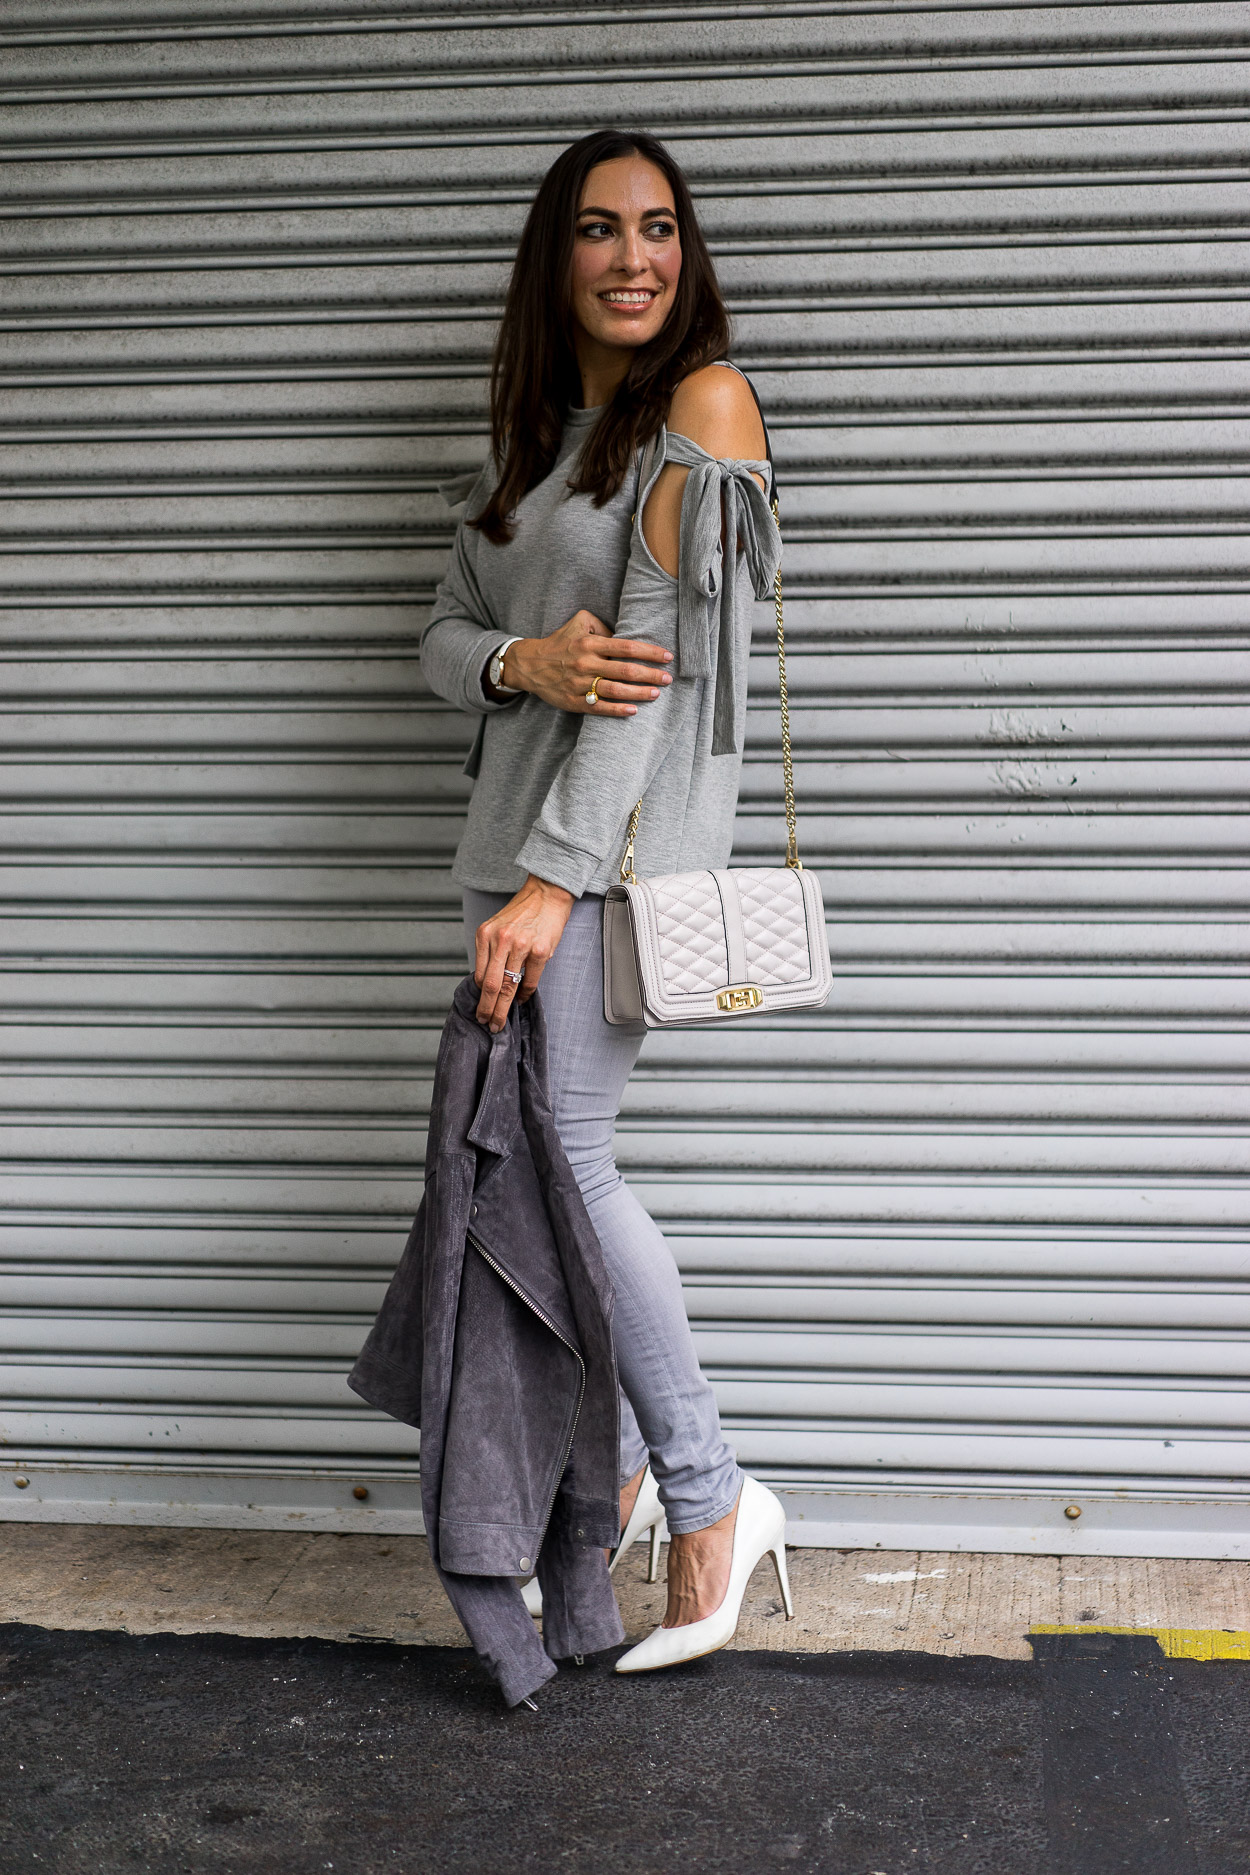 Go monochrome in Fall with a cozy grey sweater and Rebecca Minkoff Love Crossbody bag, both in the Nordstrom Anniversary sale